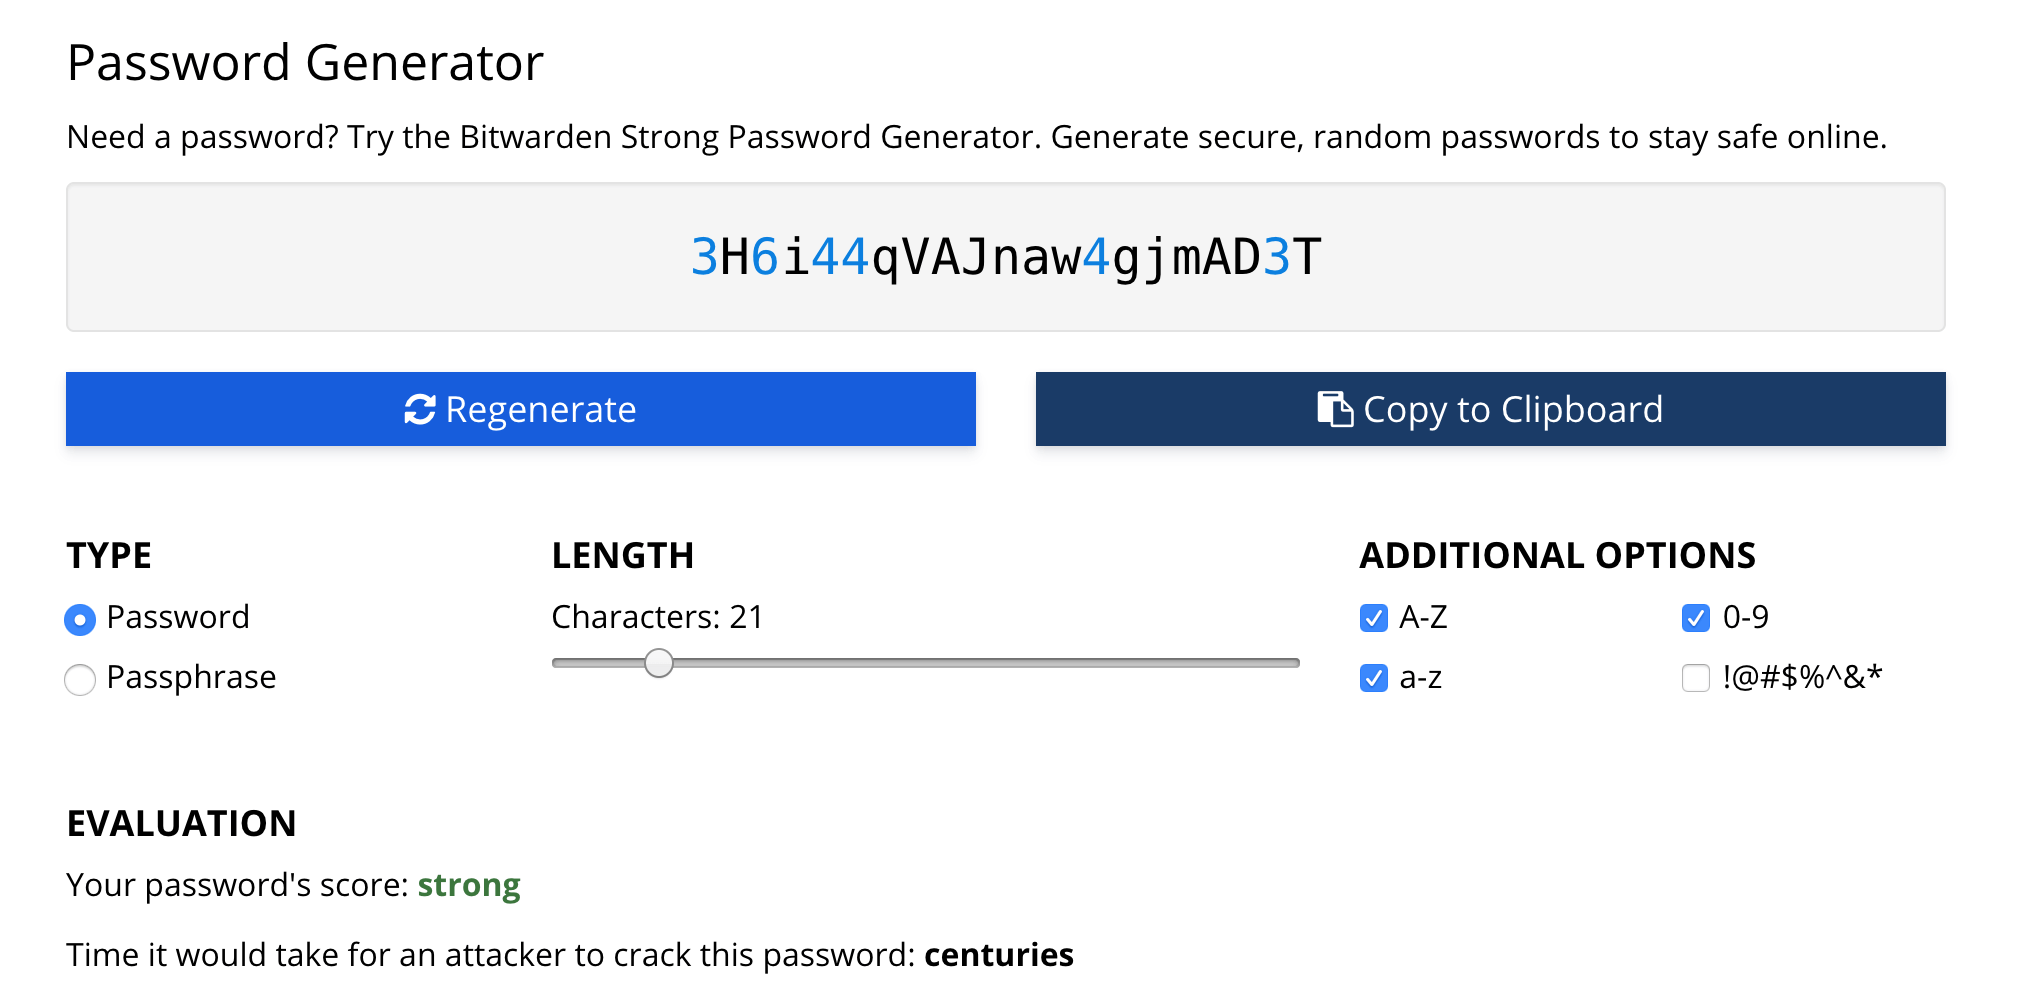 Generate great passwords using the Bitwarden Password Generator.